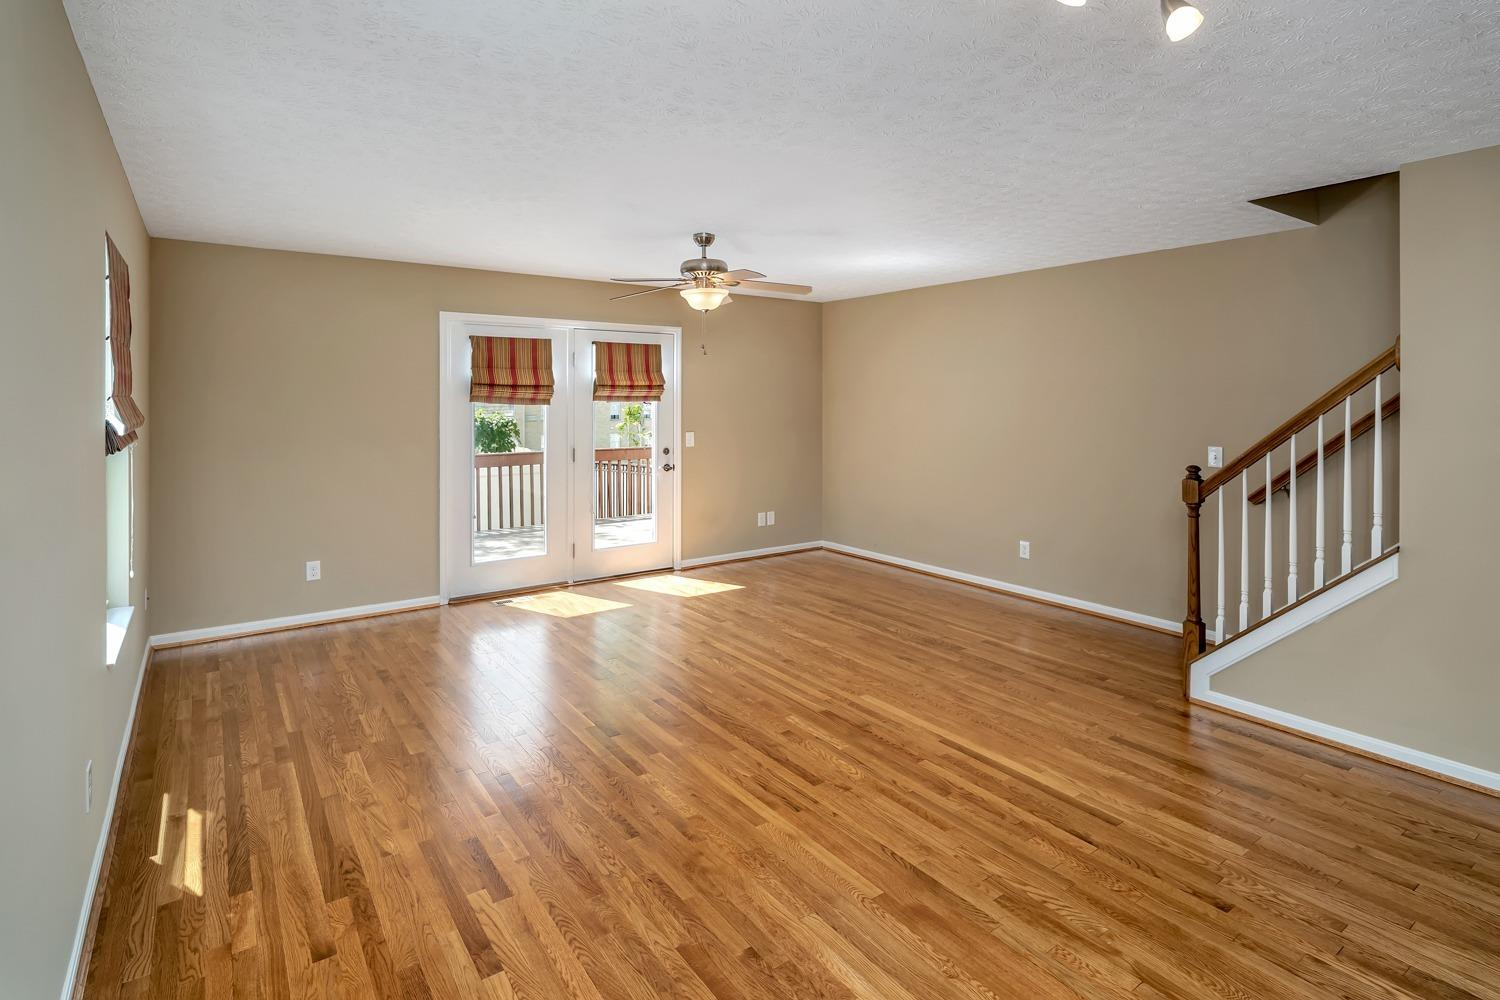 Photo 3 for 3033 Lavinia Ave, B Hyde Park, OH 45208